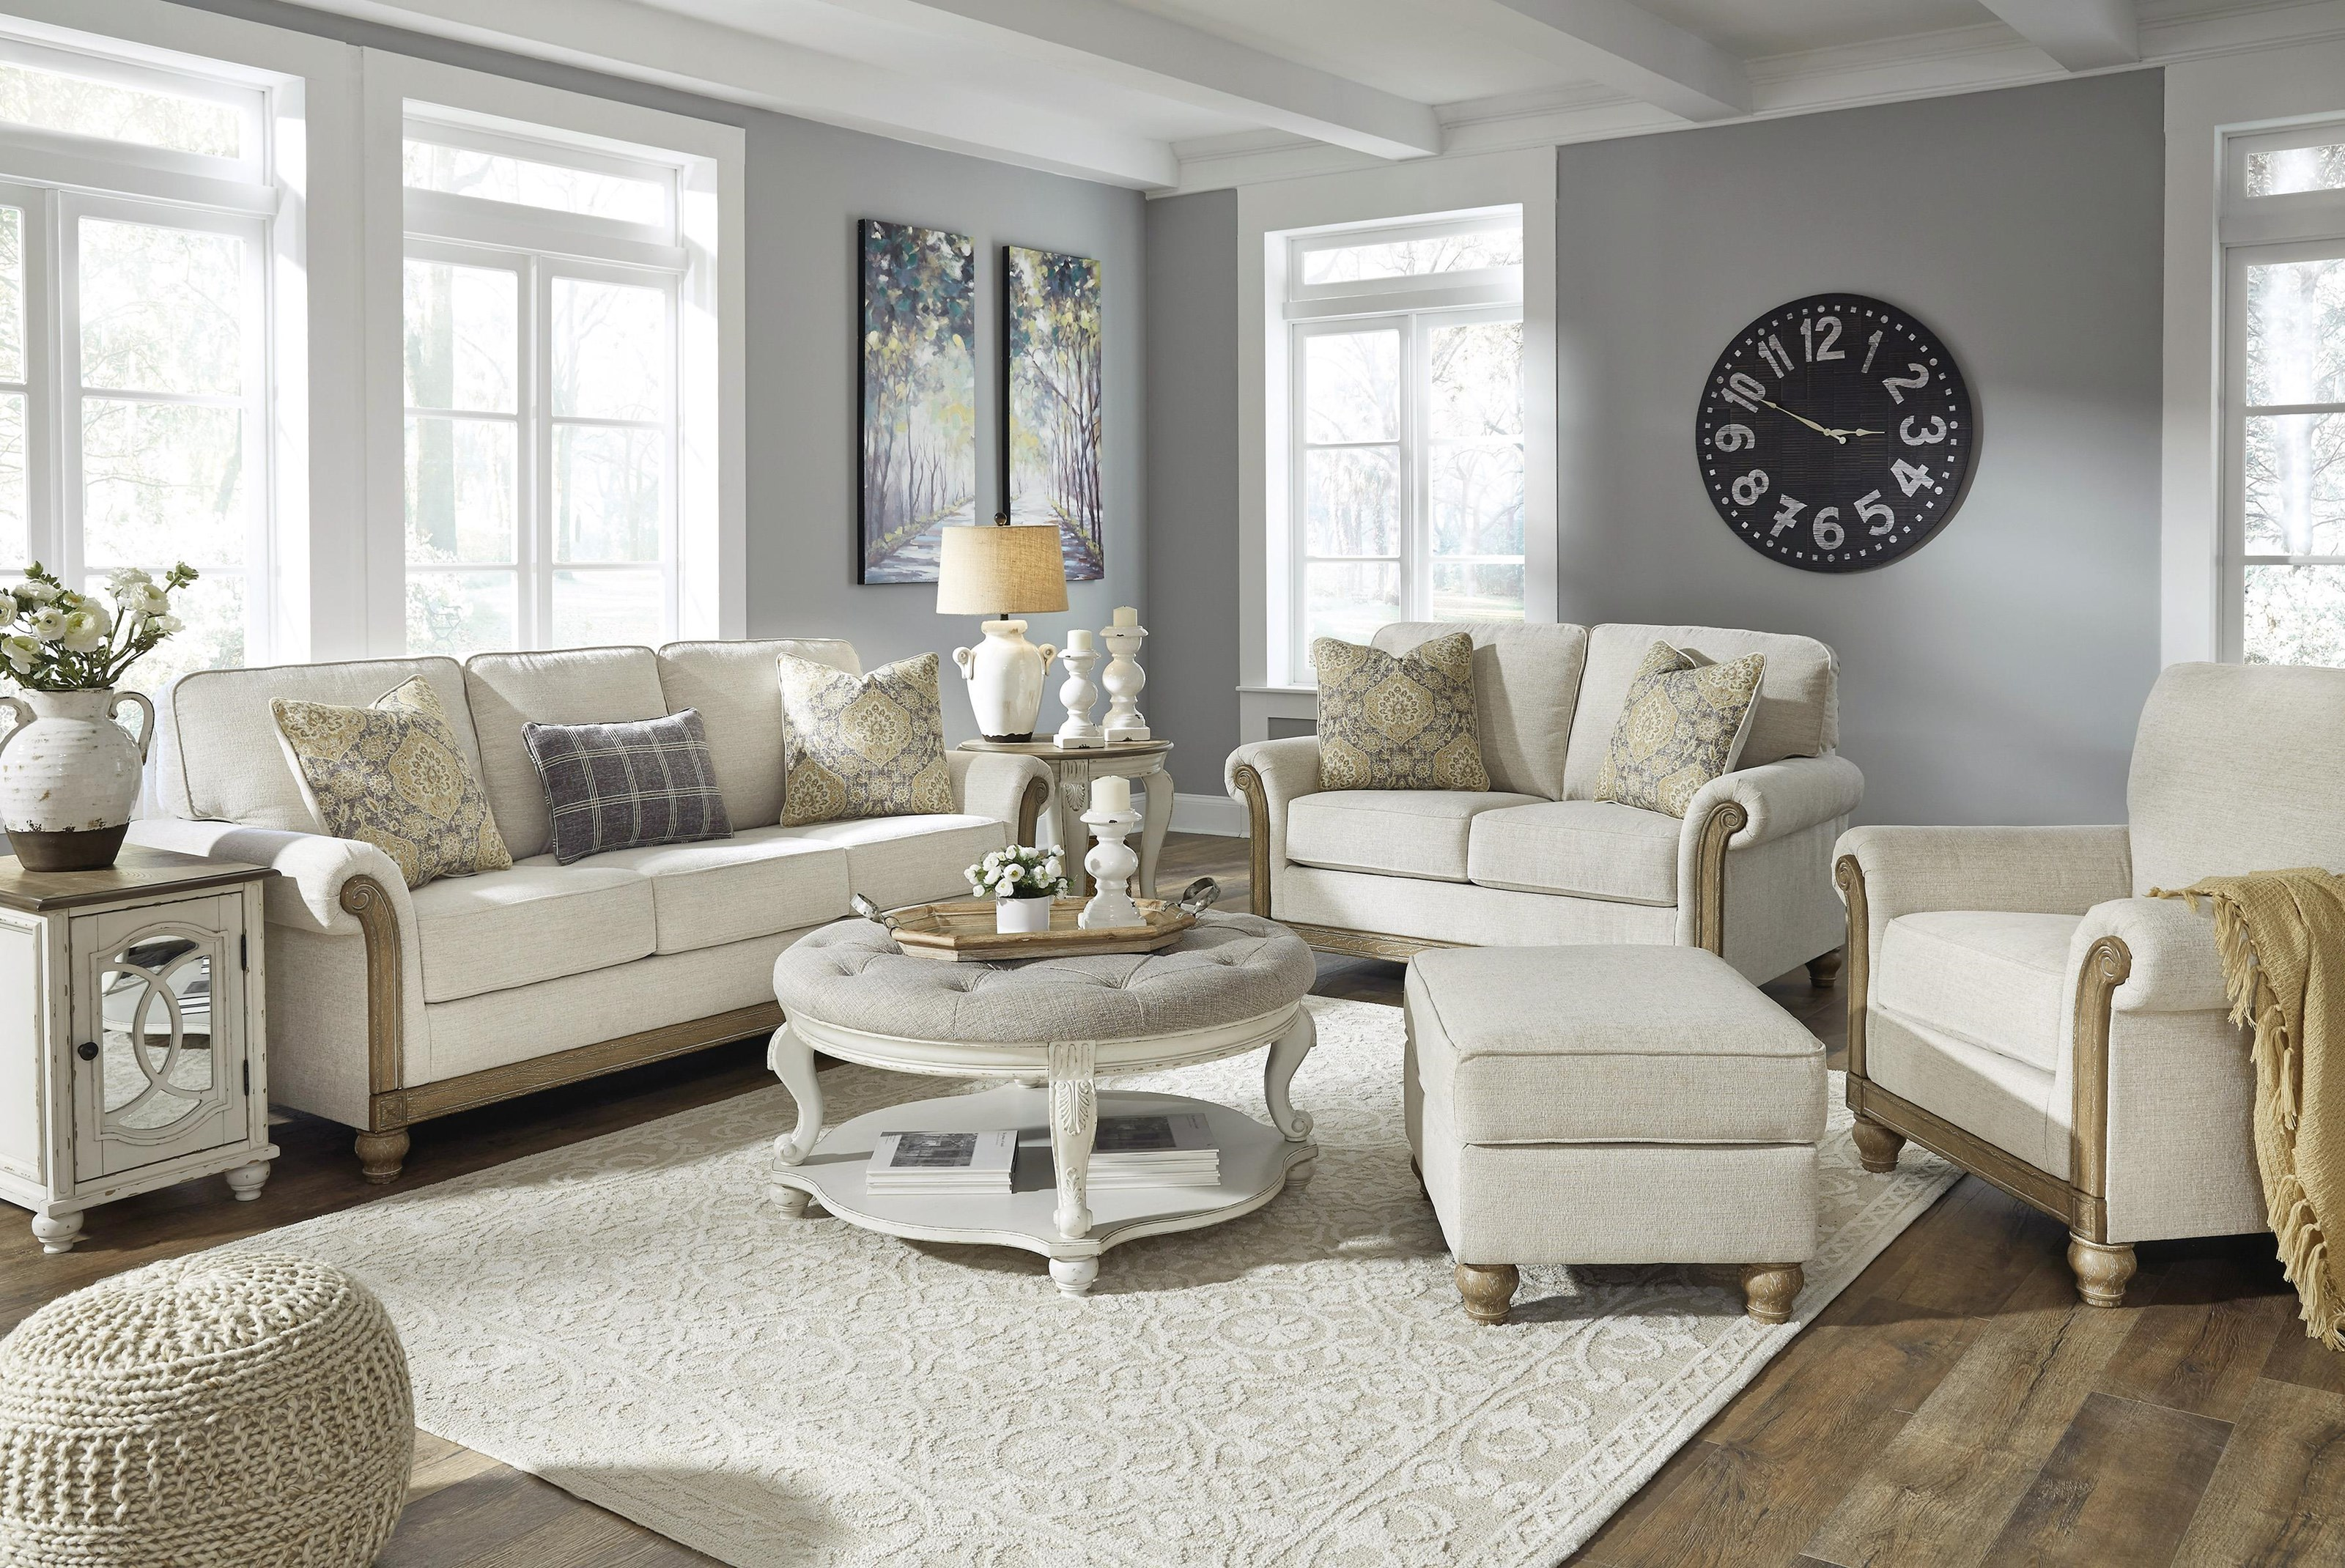 Stoneleigh Sofa, Loveseat and Chair Set by Benchcraft at Sam Levitz Furniture